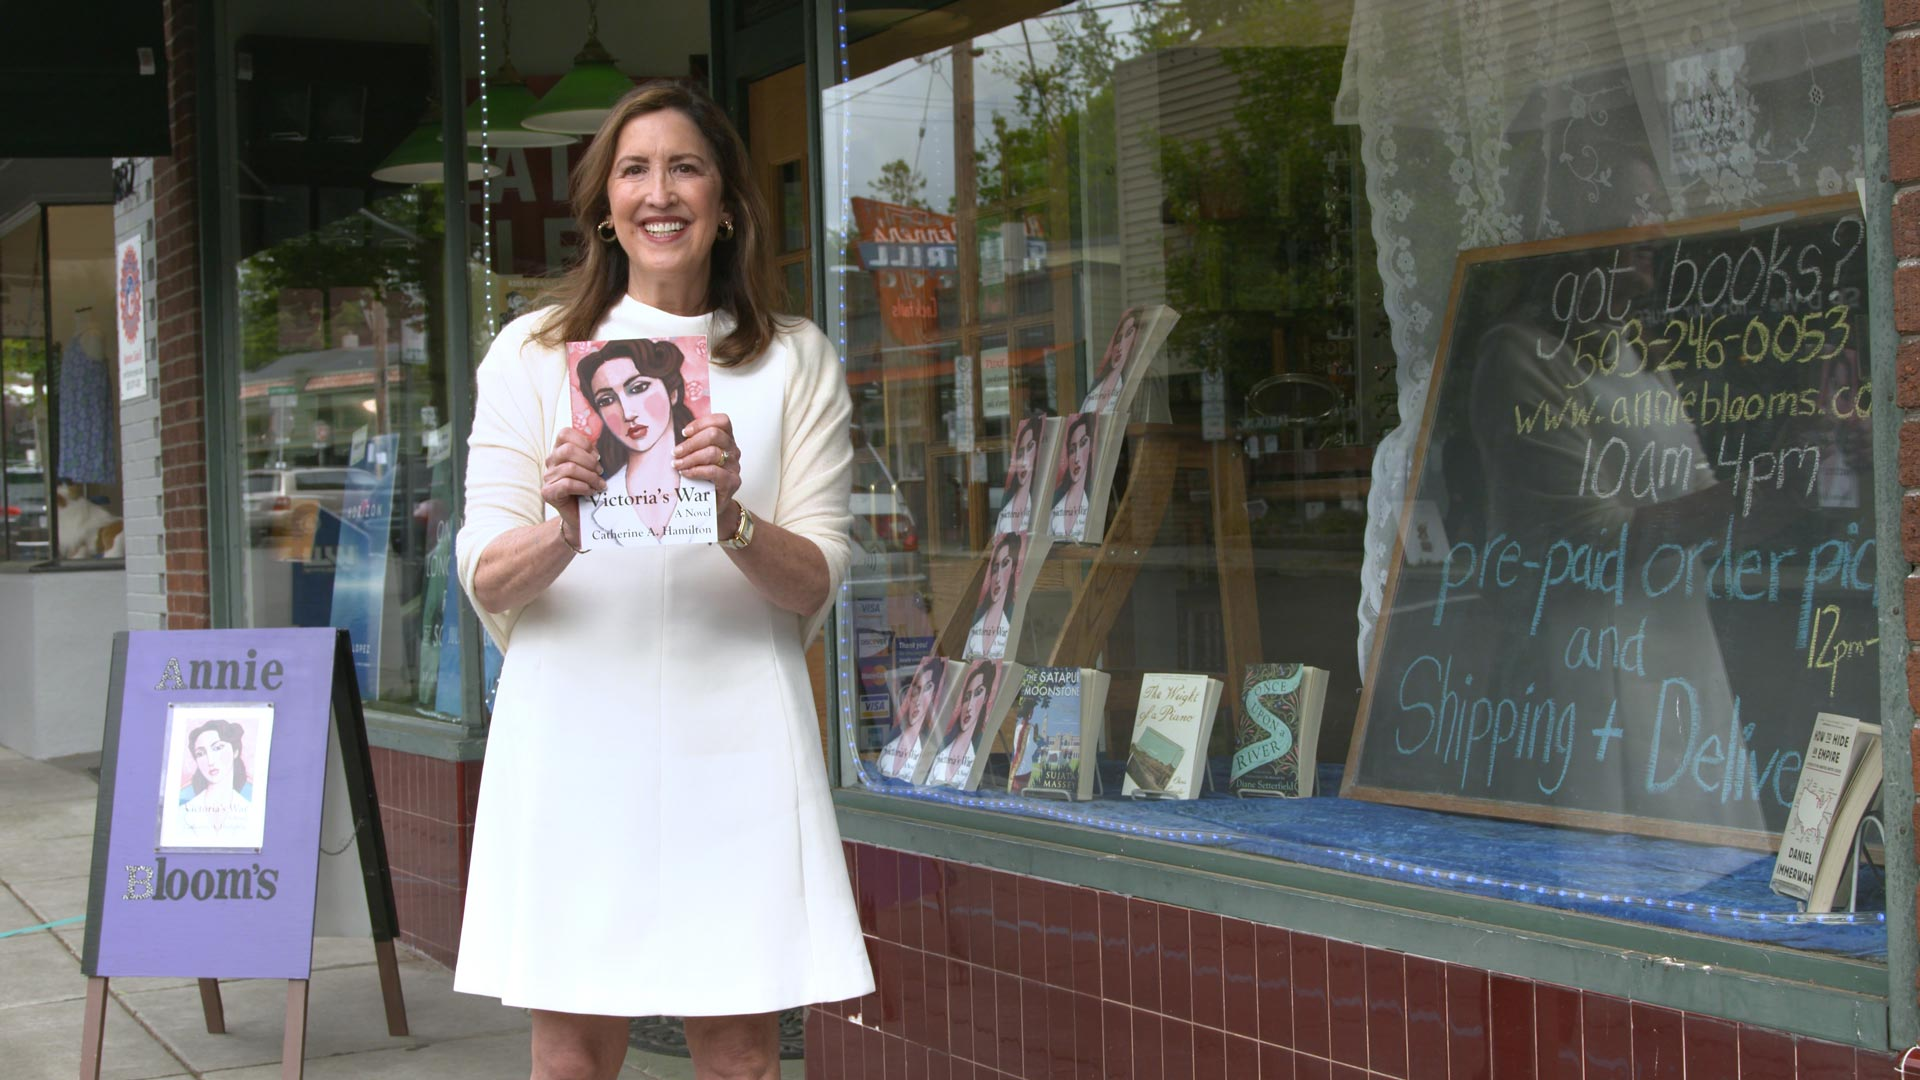 Frame from a video with Catherine Hamilton holding her book, Victoria's War, in front of Annie Bloom's Books